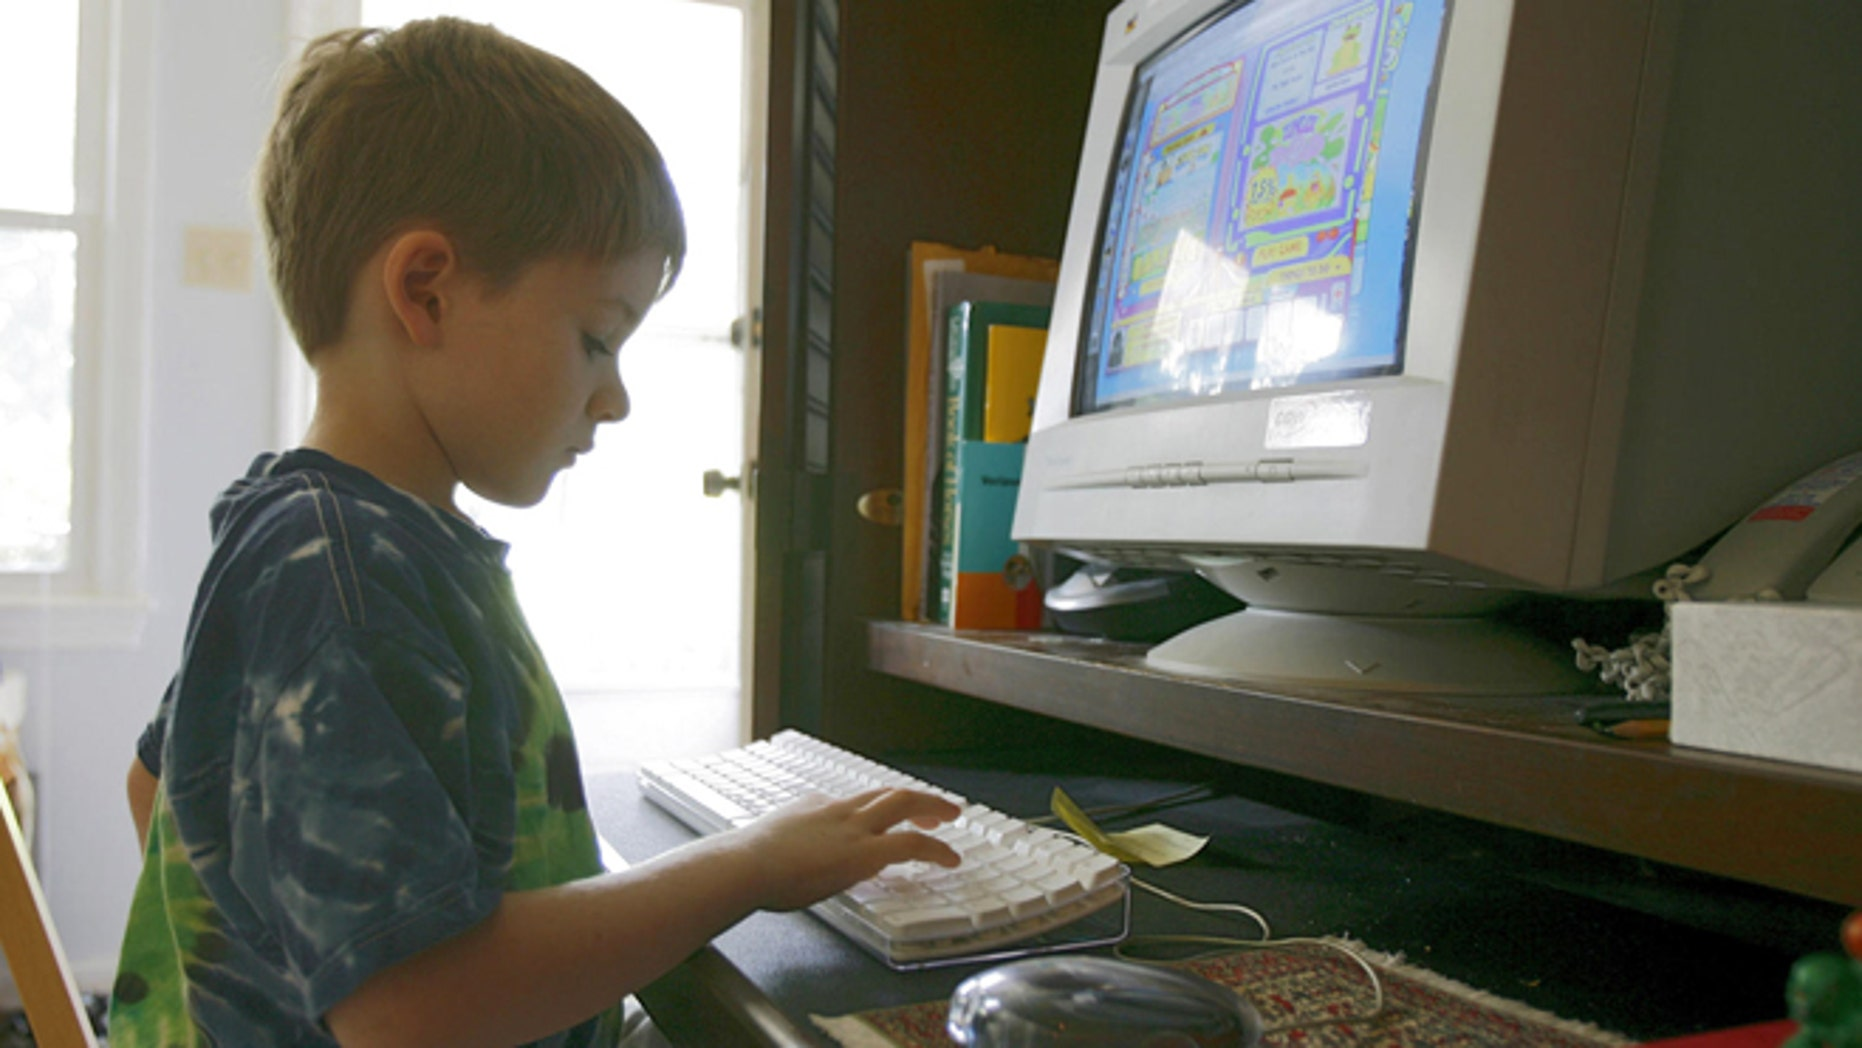 A new update to the 15-year-old Children's Online Privacy Protection Act aims to tighten restrictions on gathering and selling data from children.